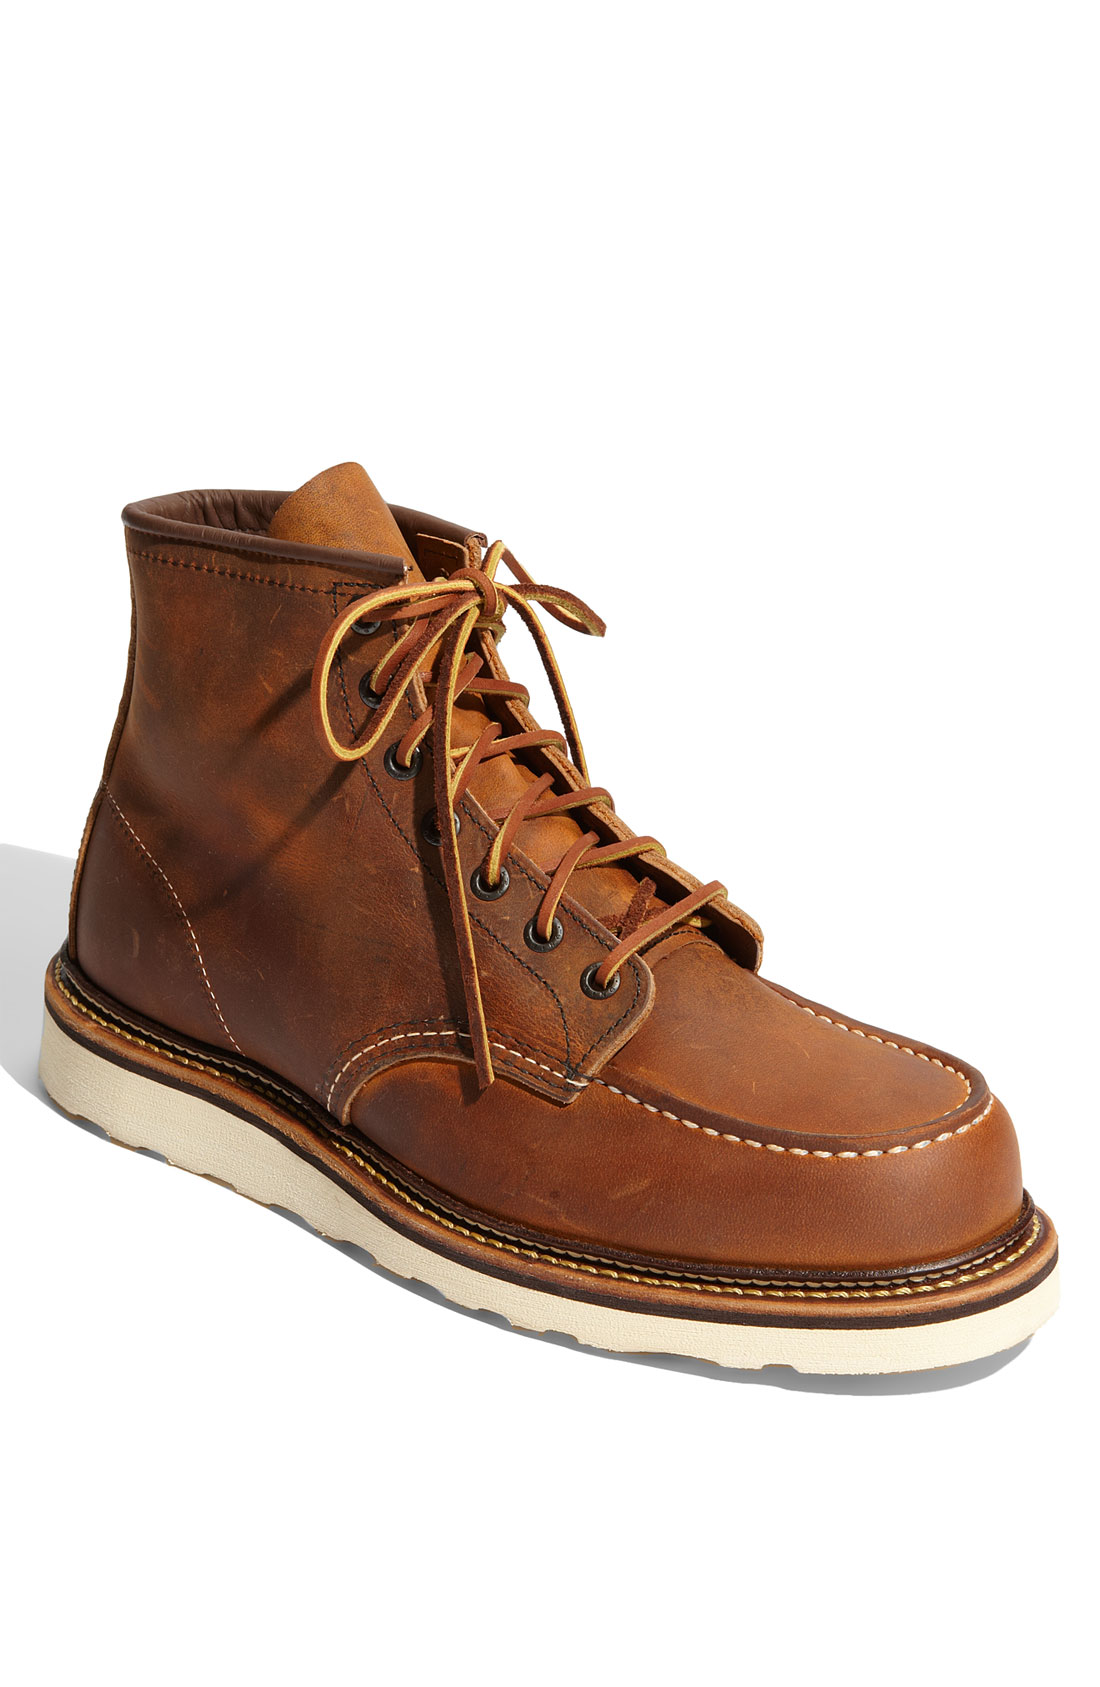 Red Wing Boots Online Sales T4tegZTg